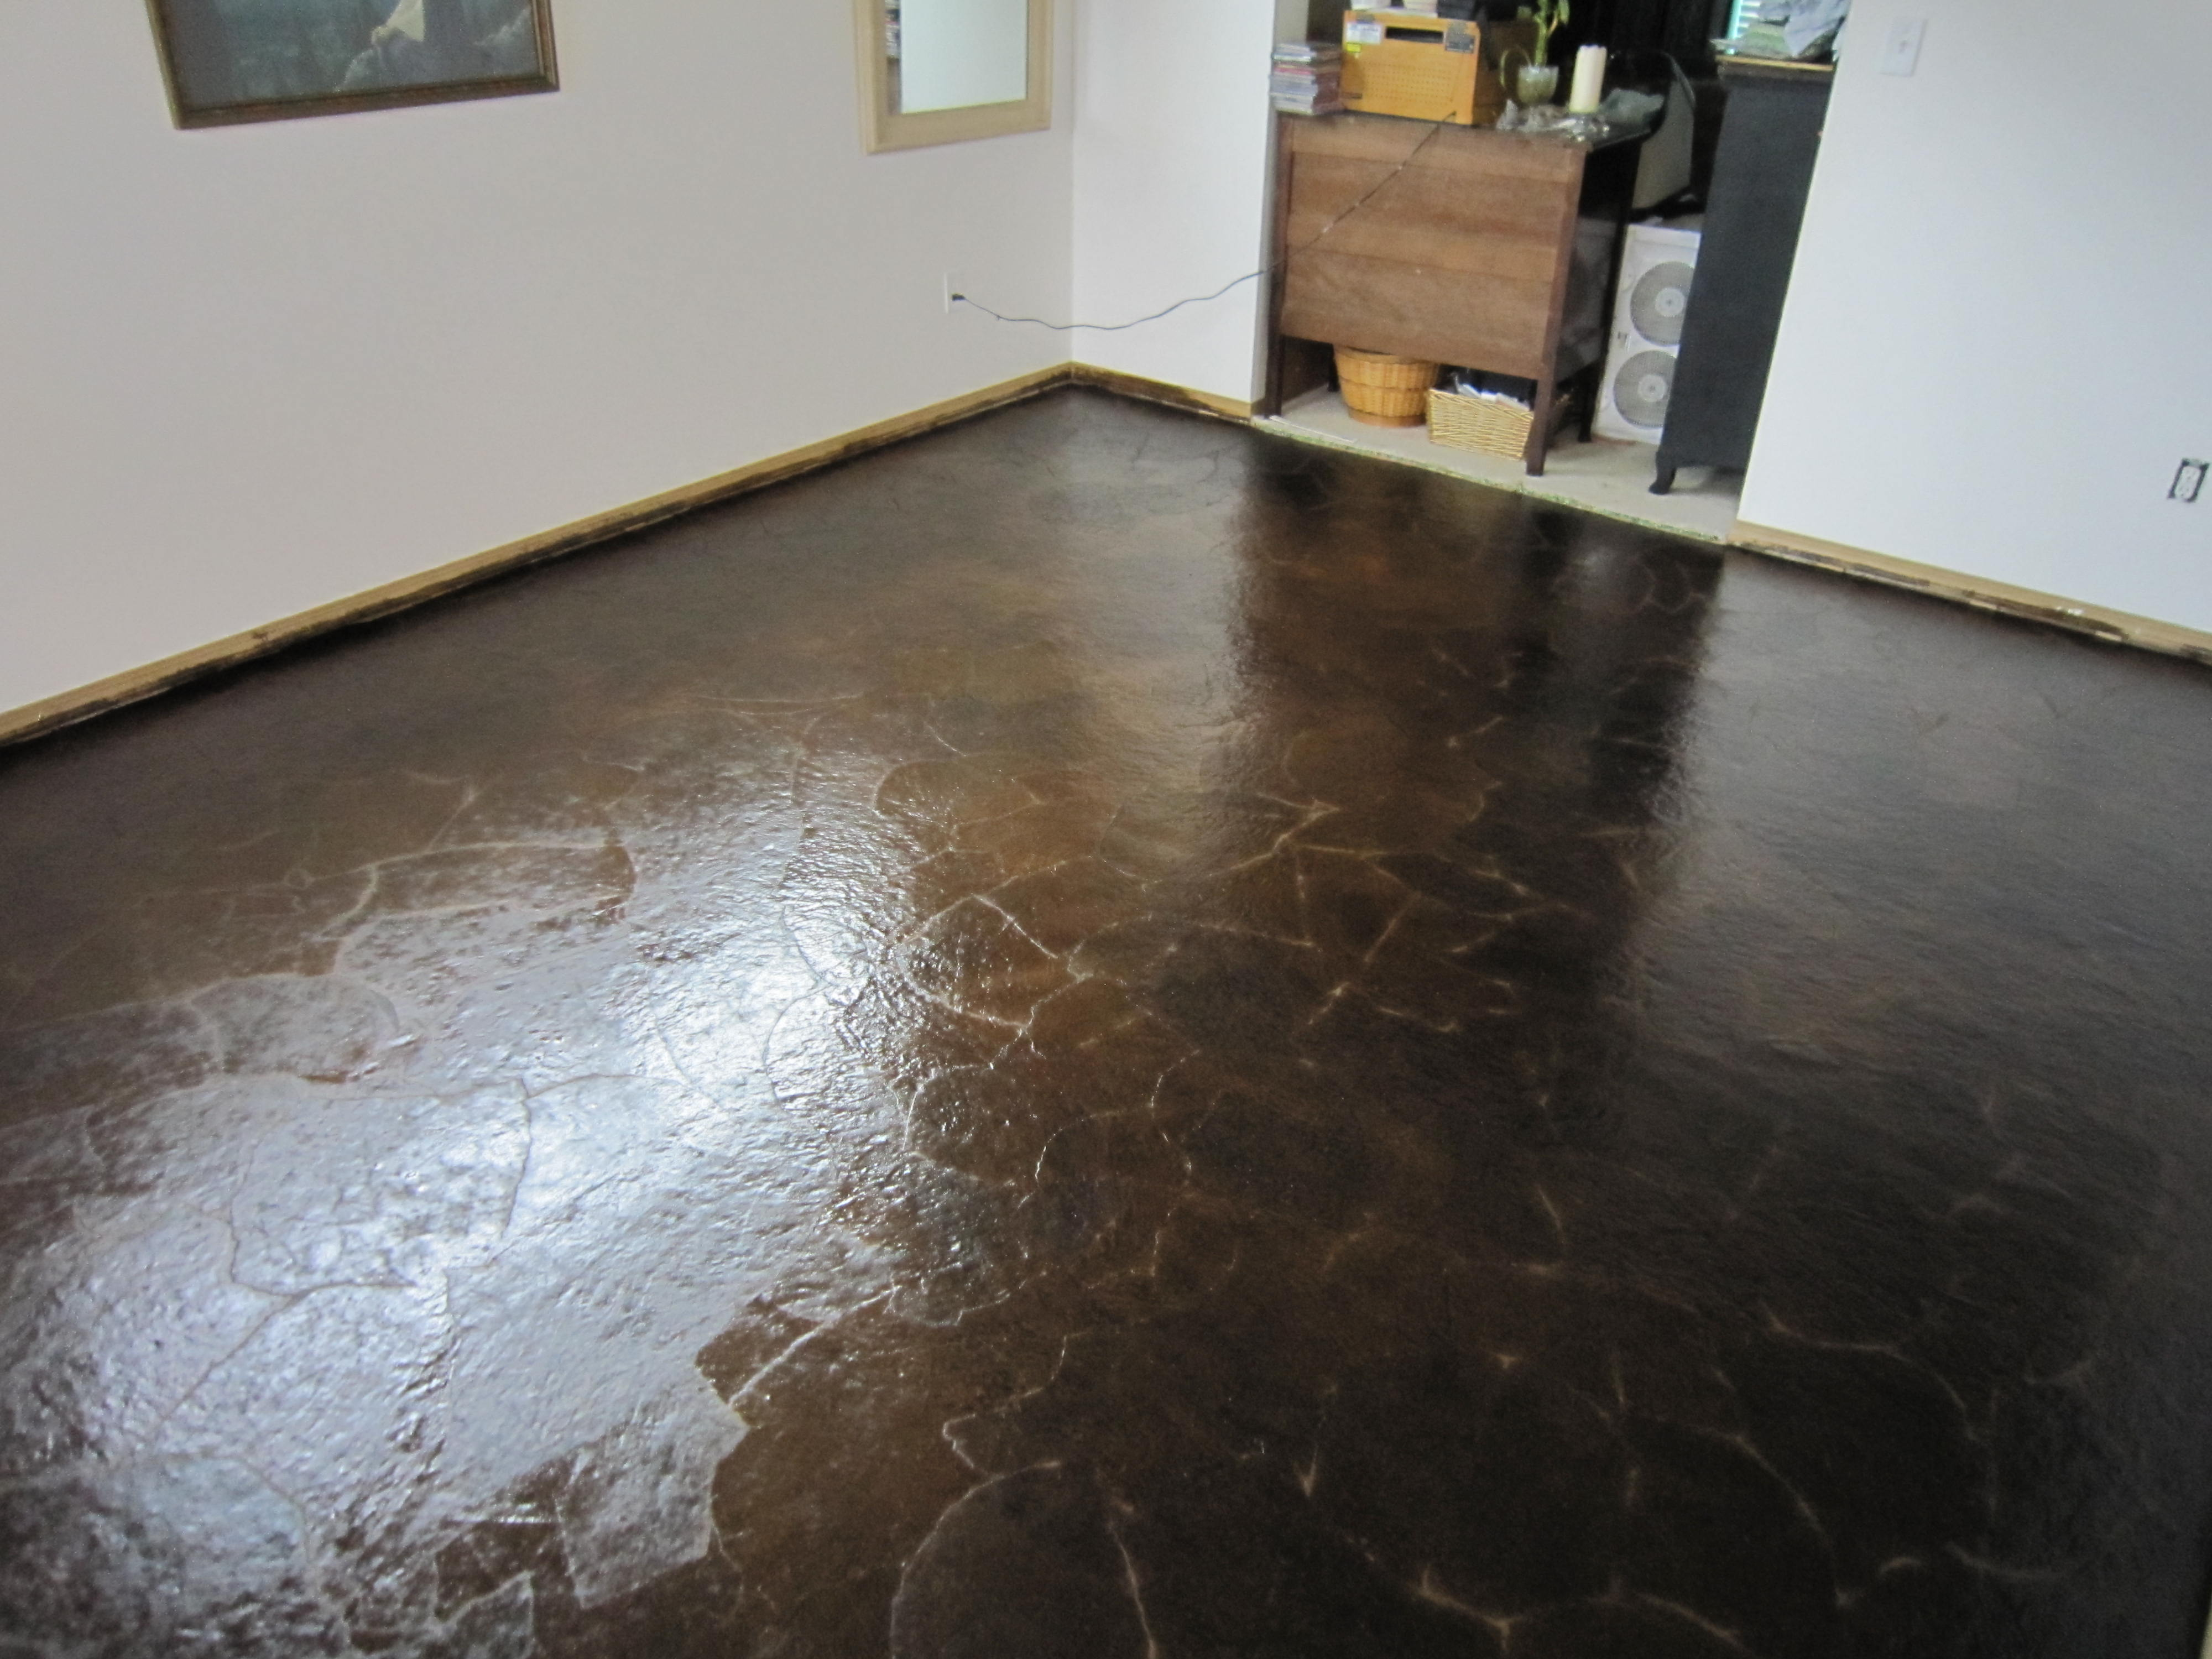 DIY Brown Paper Floor AwesomenessRoom 2 Complete with Mistakes  Oooh I Could Totally Do That